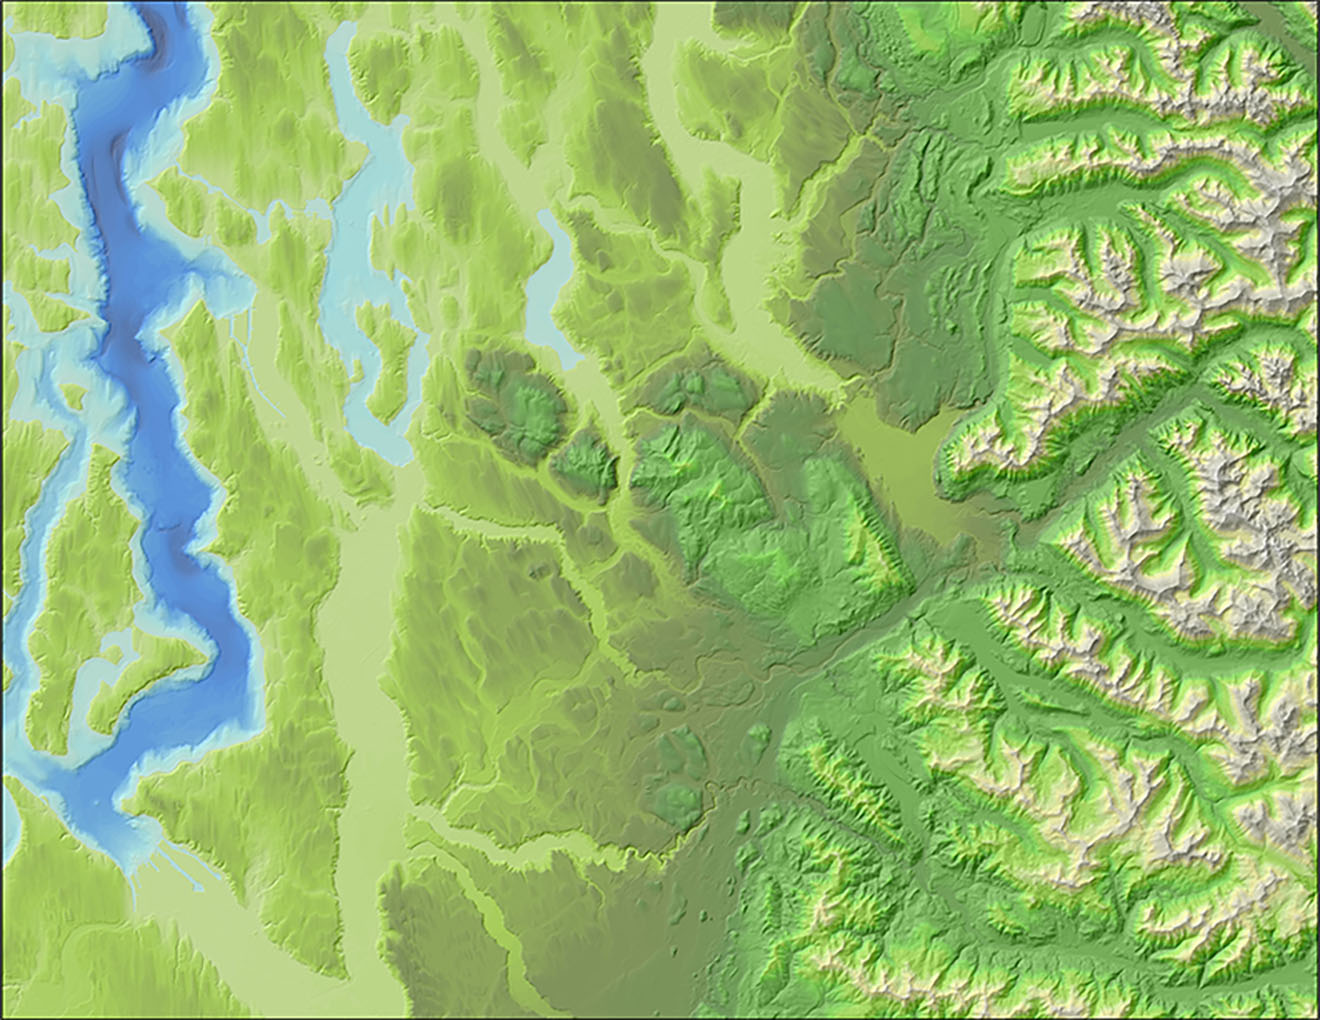 Lidar-derived hillshading with bathymetric and elevation color tints applied